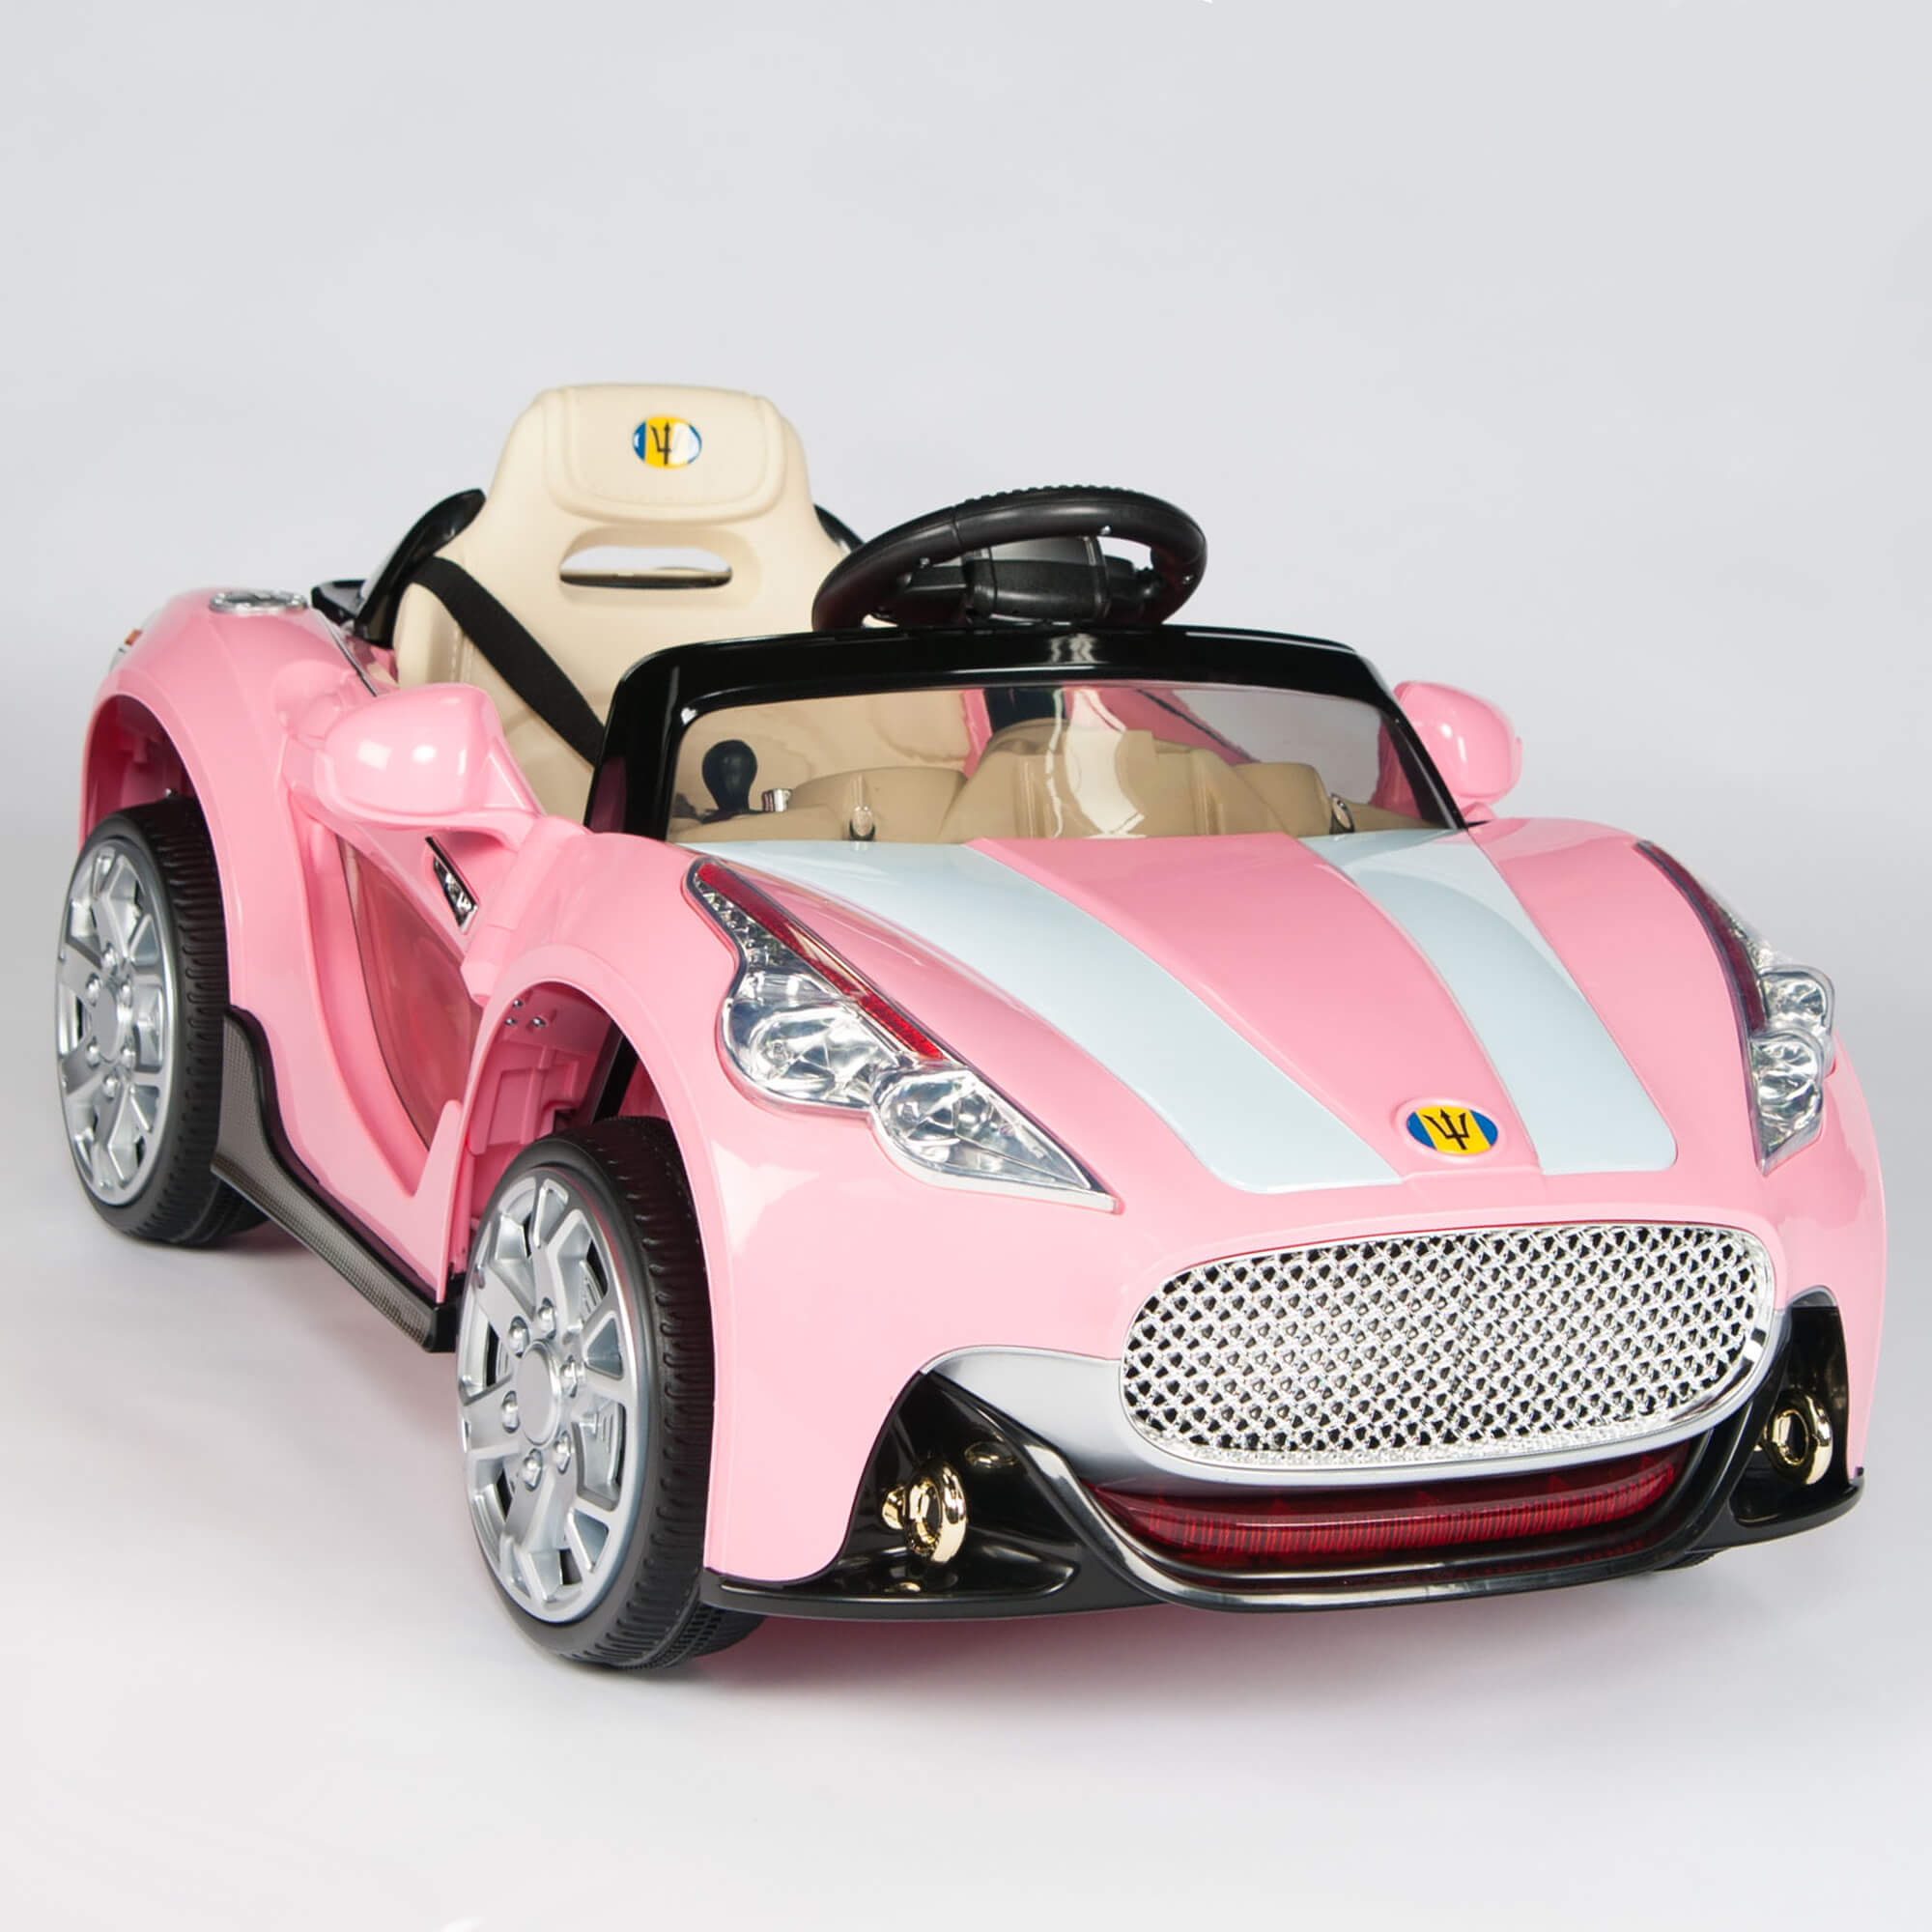 Buggy Mini Cabrio Kids Sport Edition 12v Maserati Style Ride On Car Pink